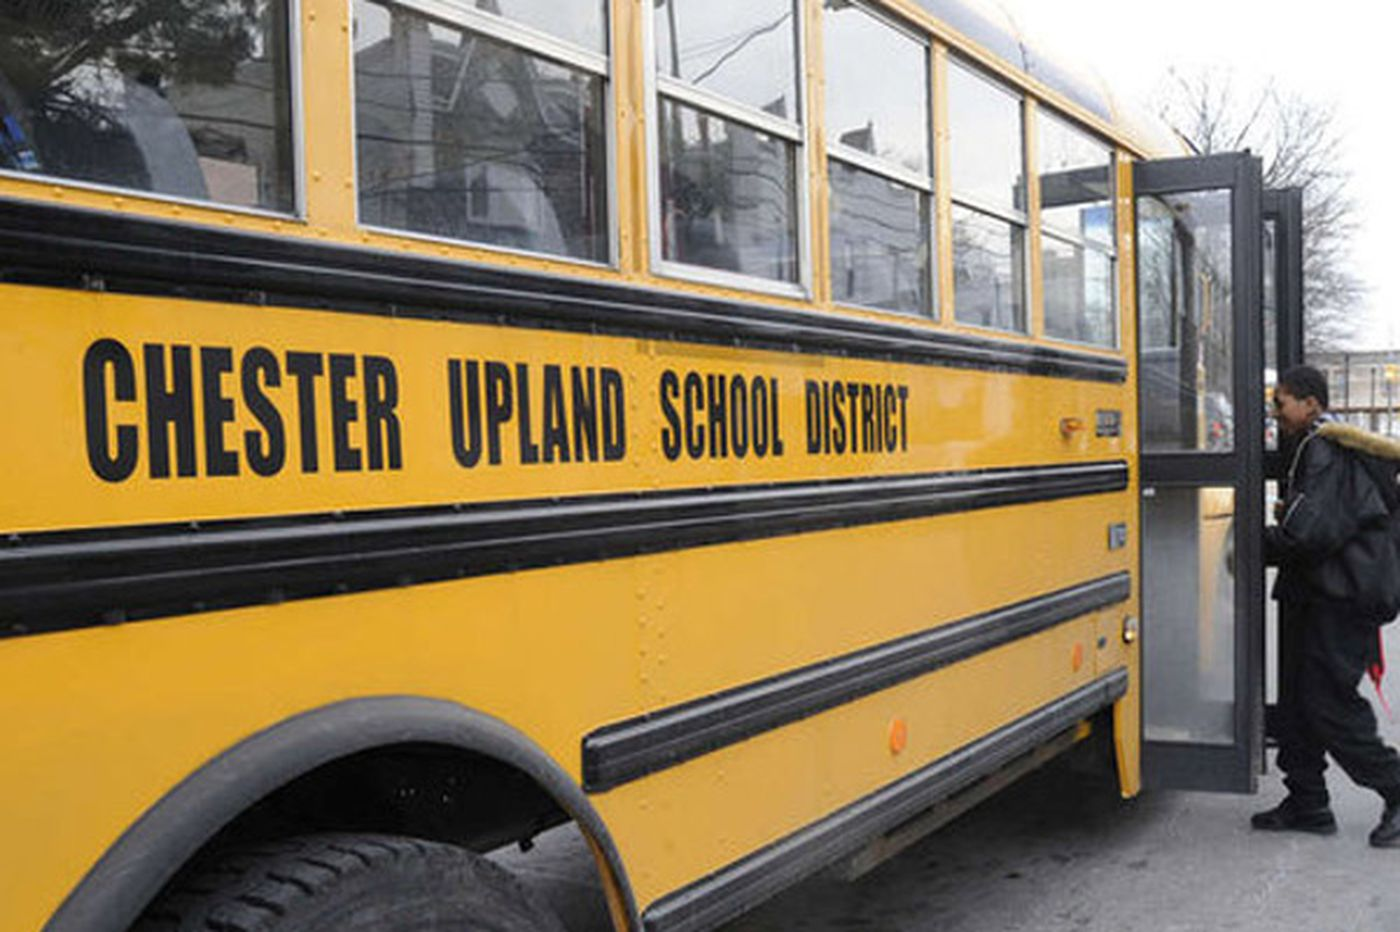 School chief wants China to invest in Chester-Upland